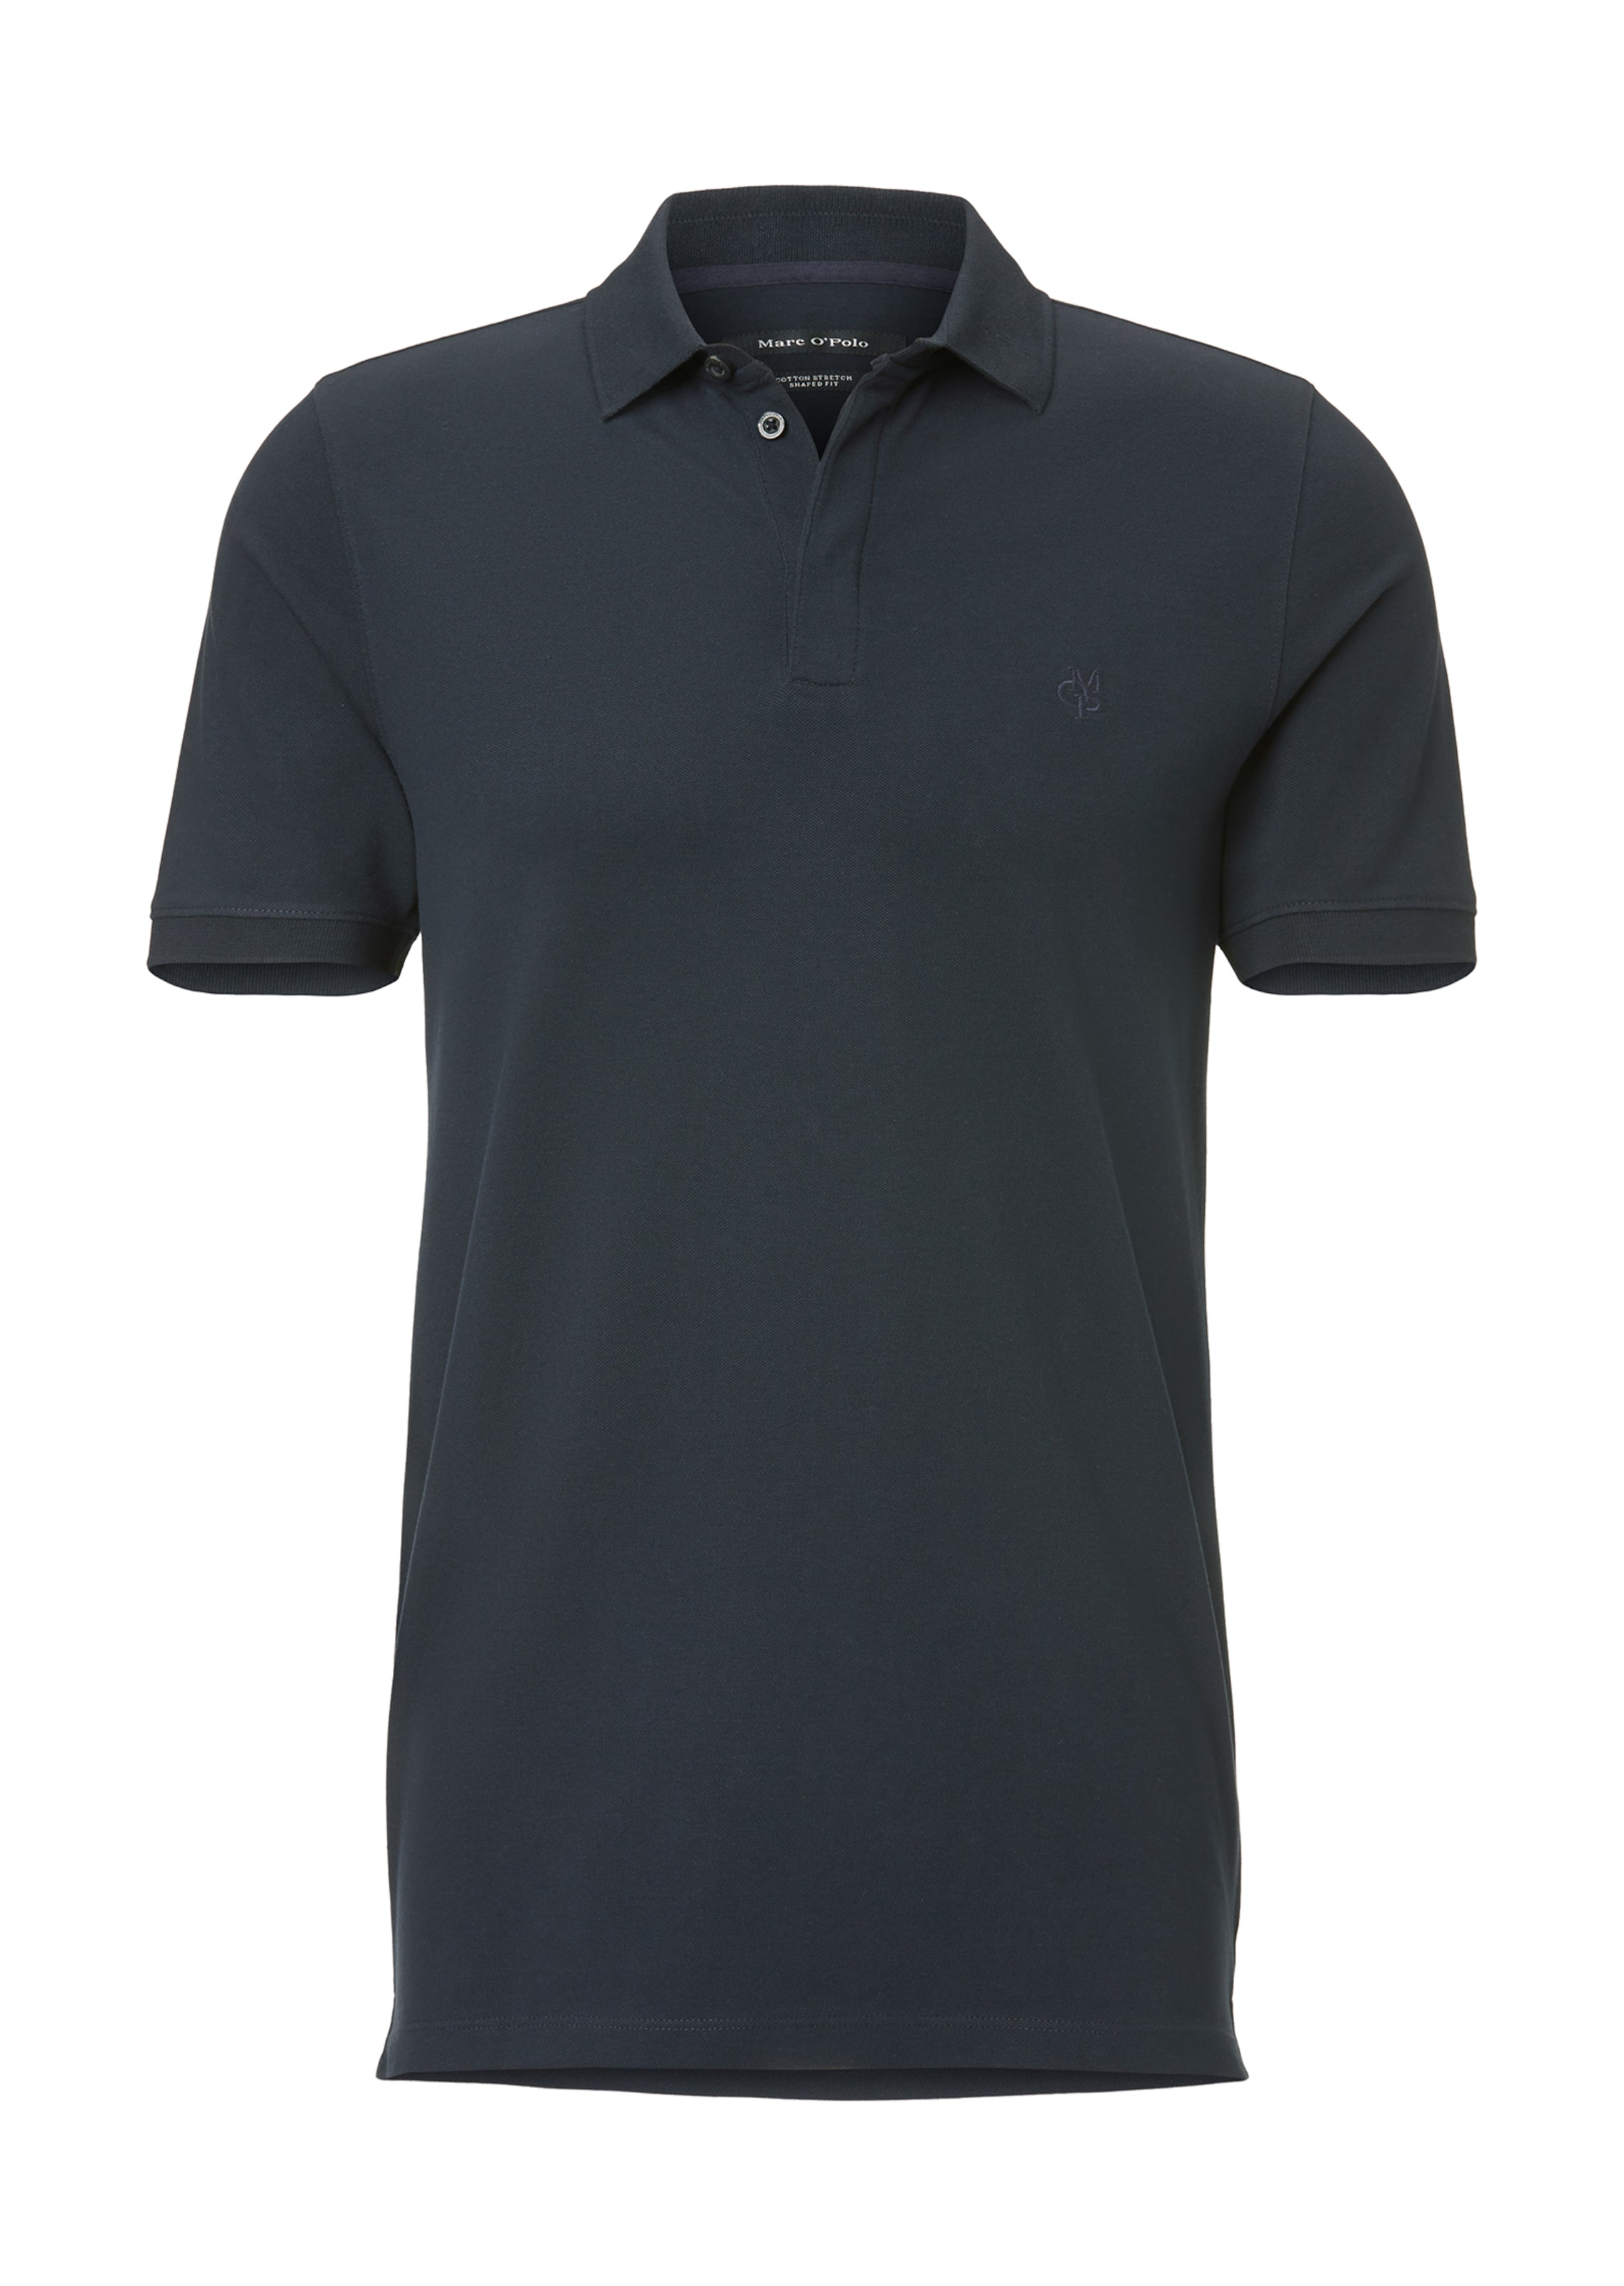 Anthrazit Anthrazit O'polo Marc Shirt Marc In O'polo In Shirt O'polo Marc Shirt In Onw8P0kX